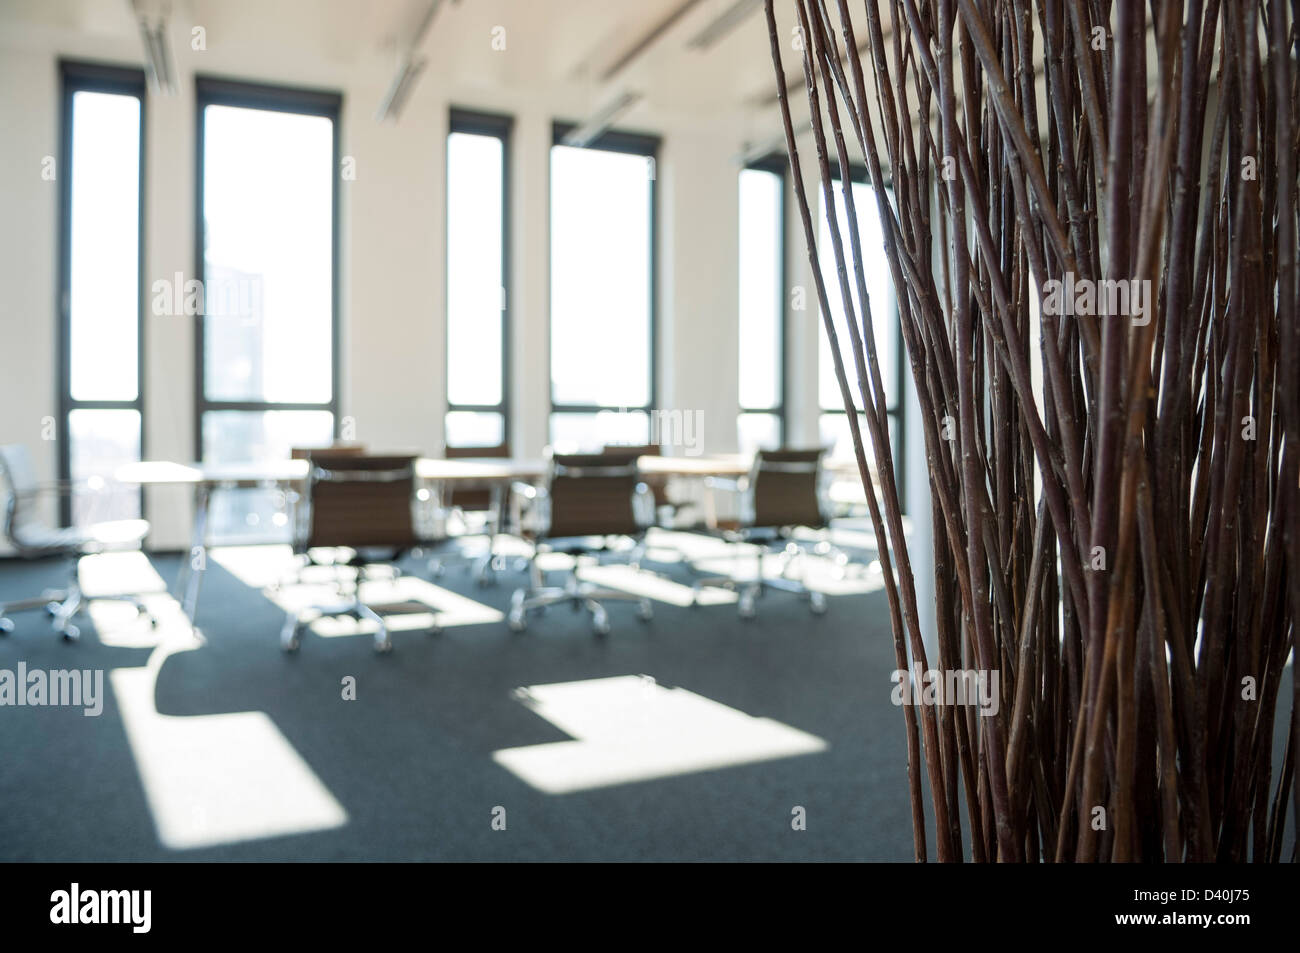 Eames Interior office interior with eames office chairs stock photo, royalty free